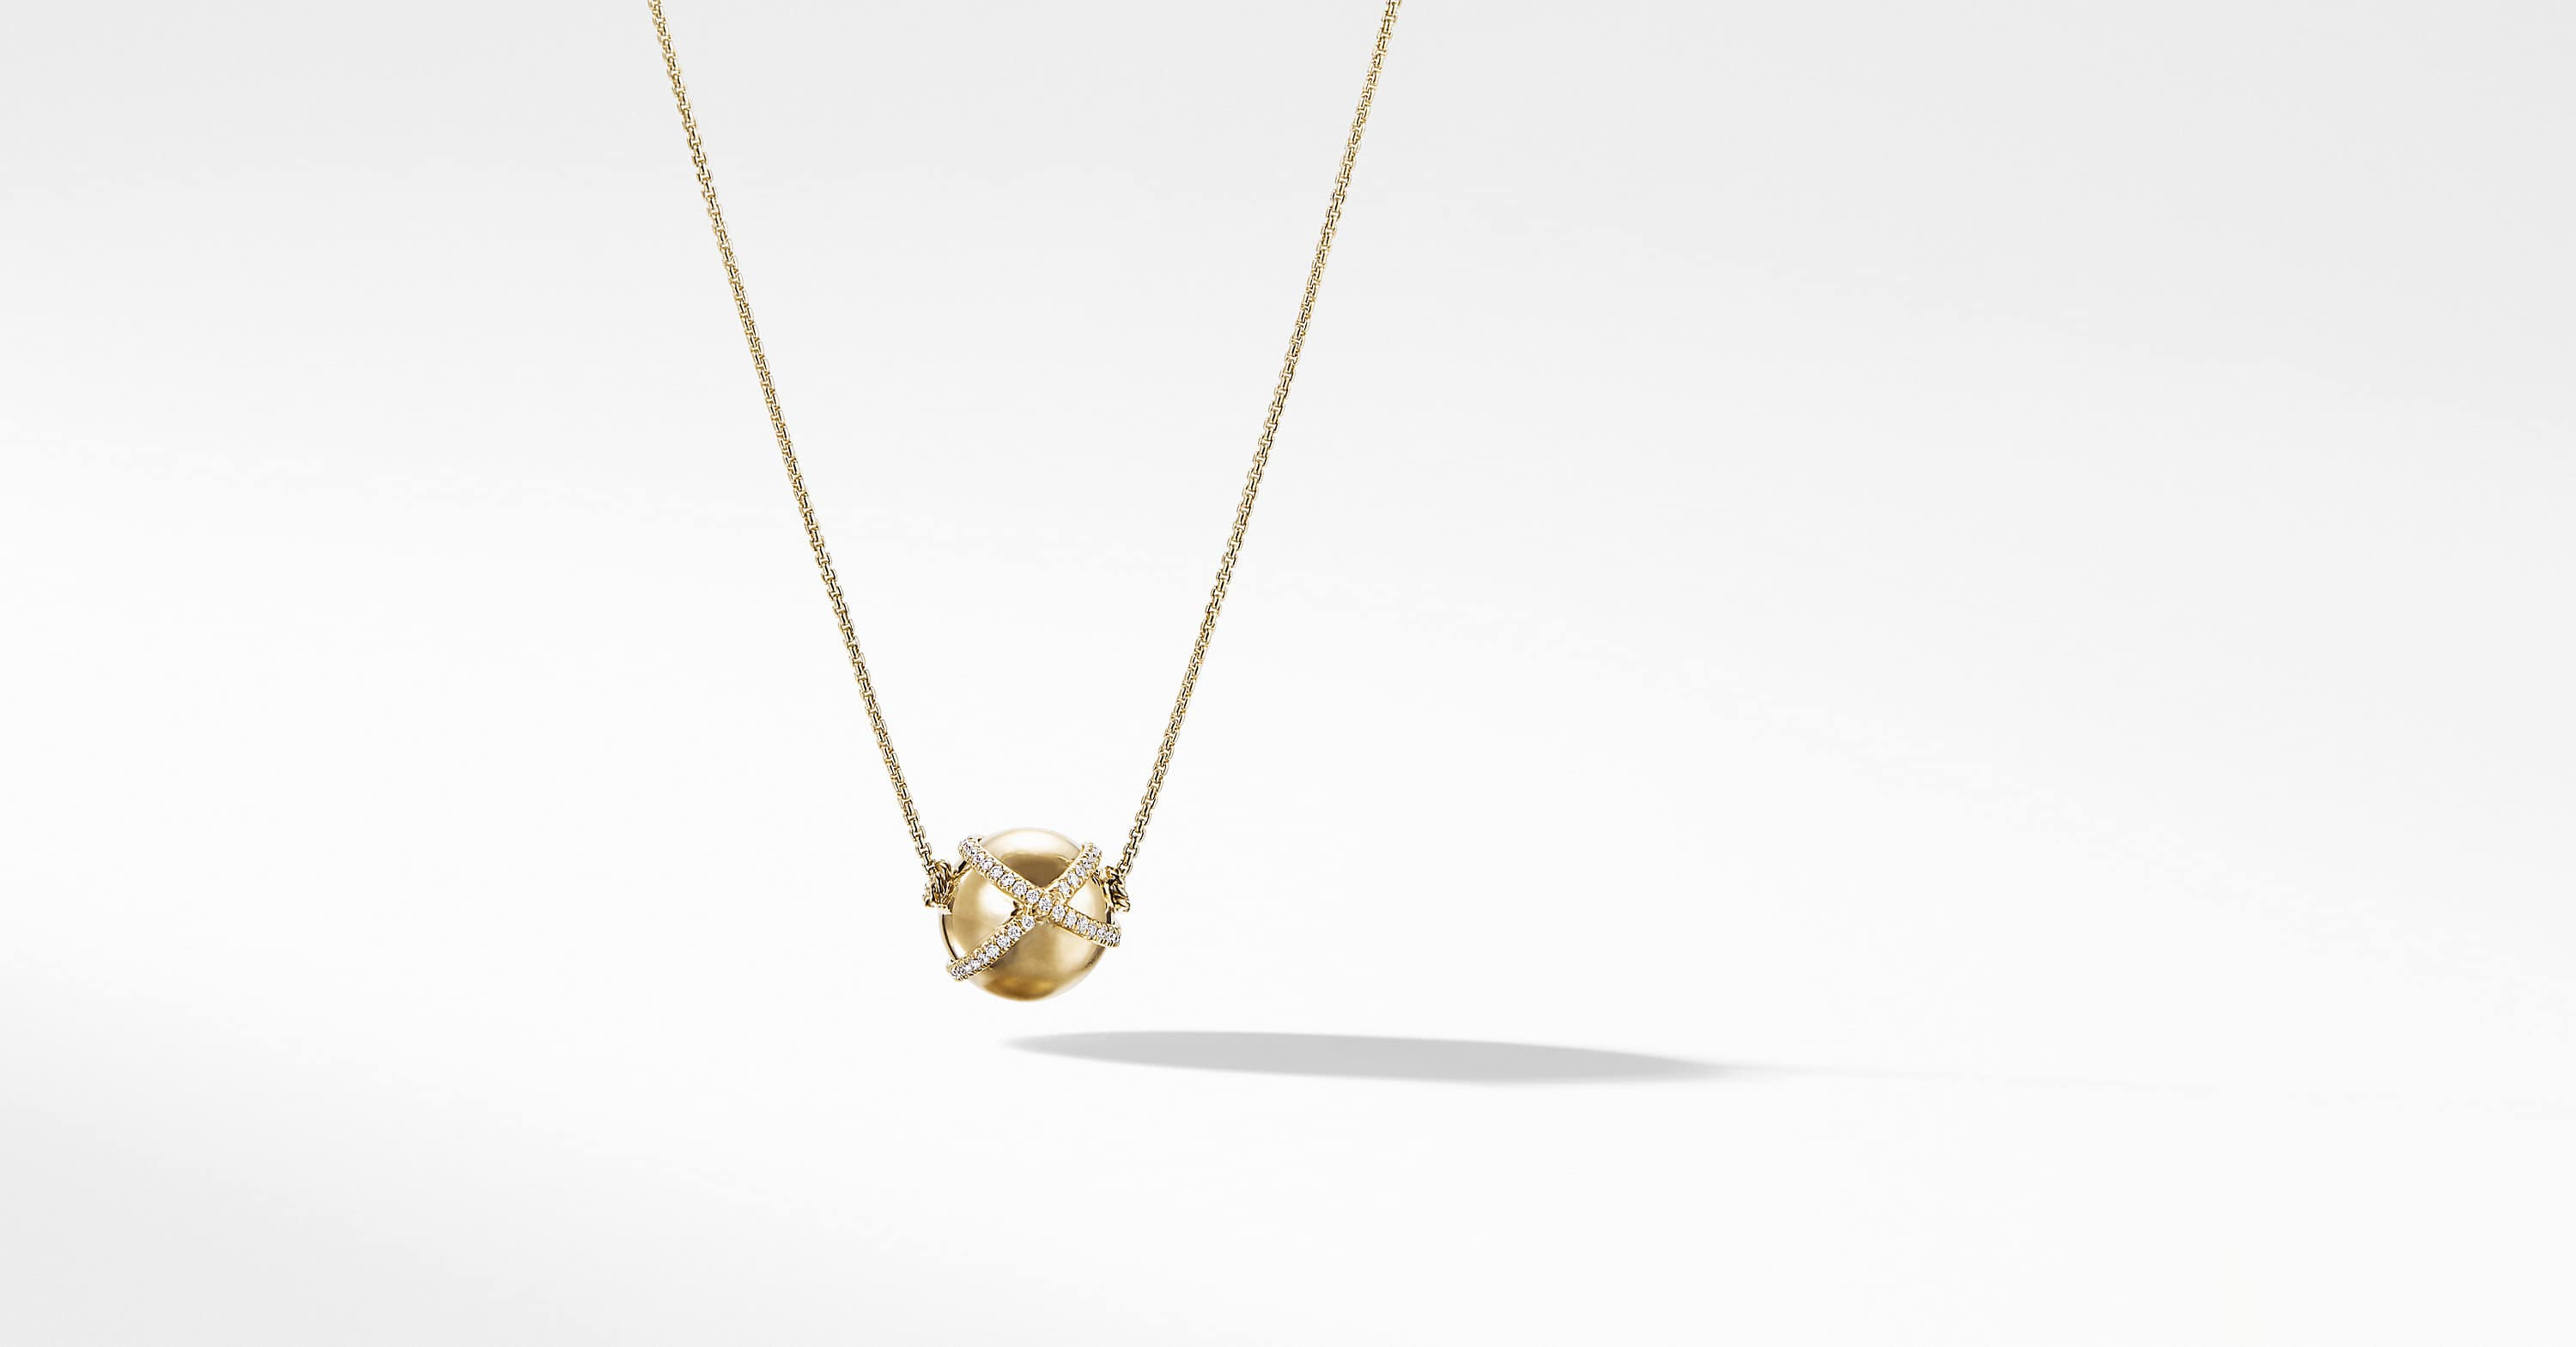 Solari Pave Wrap Pendant Necklace with Diamonds in 18K Gold, 12mm